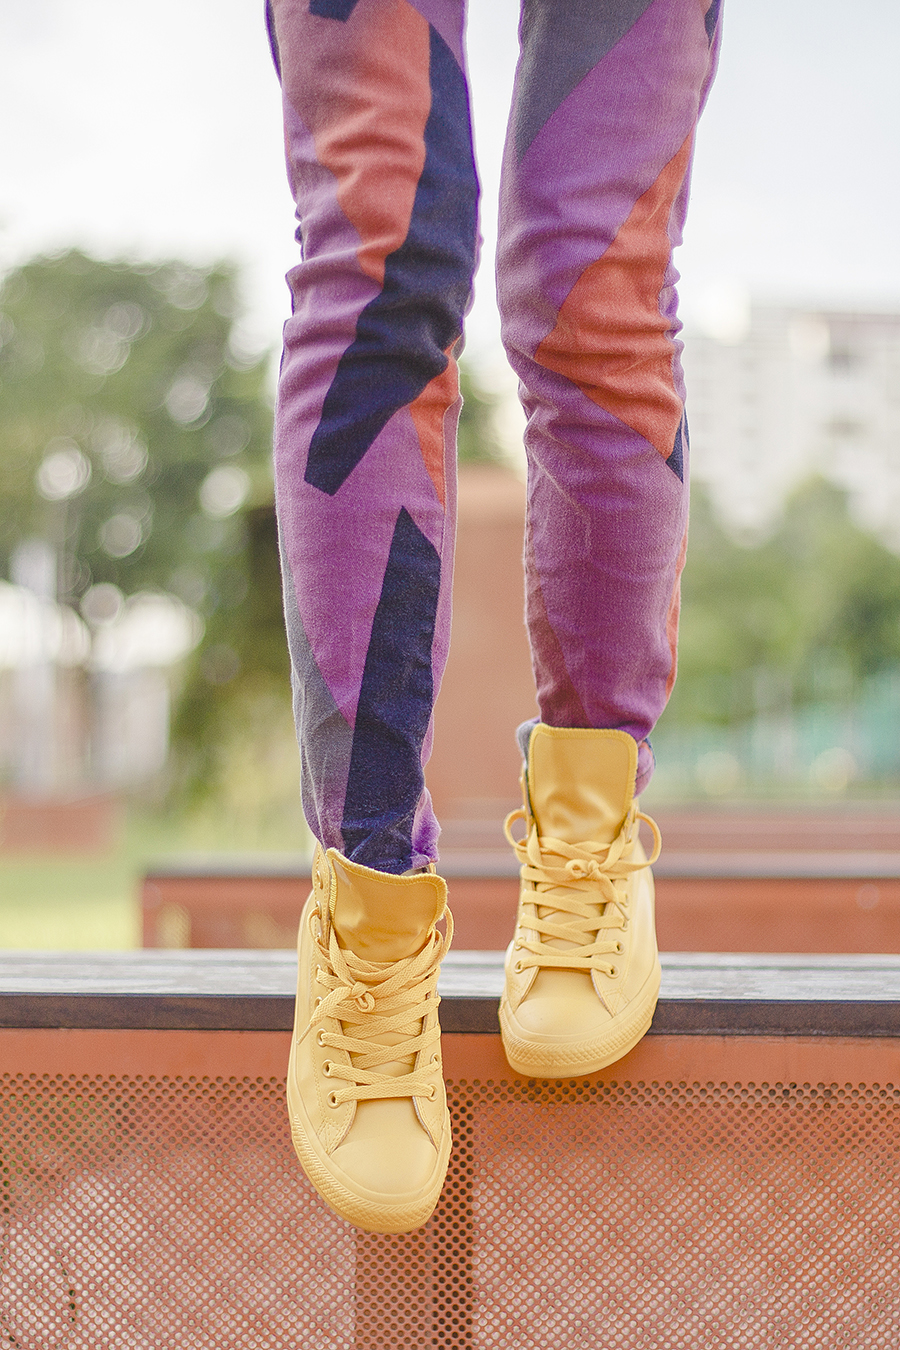 BDG abstract purple jeans from Urban Outfitters, Converse yellow rubber-coated All Stars Chuck Taylors sneakers c/o Shopbop.